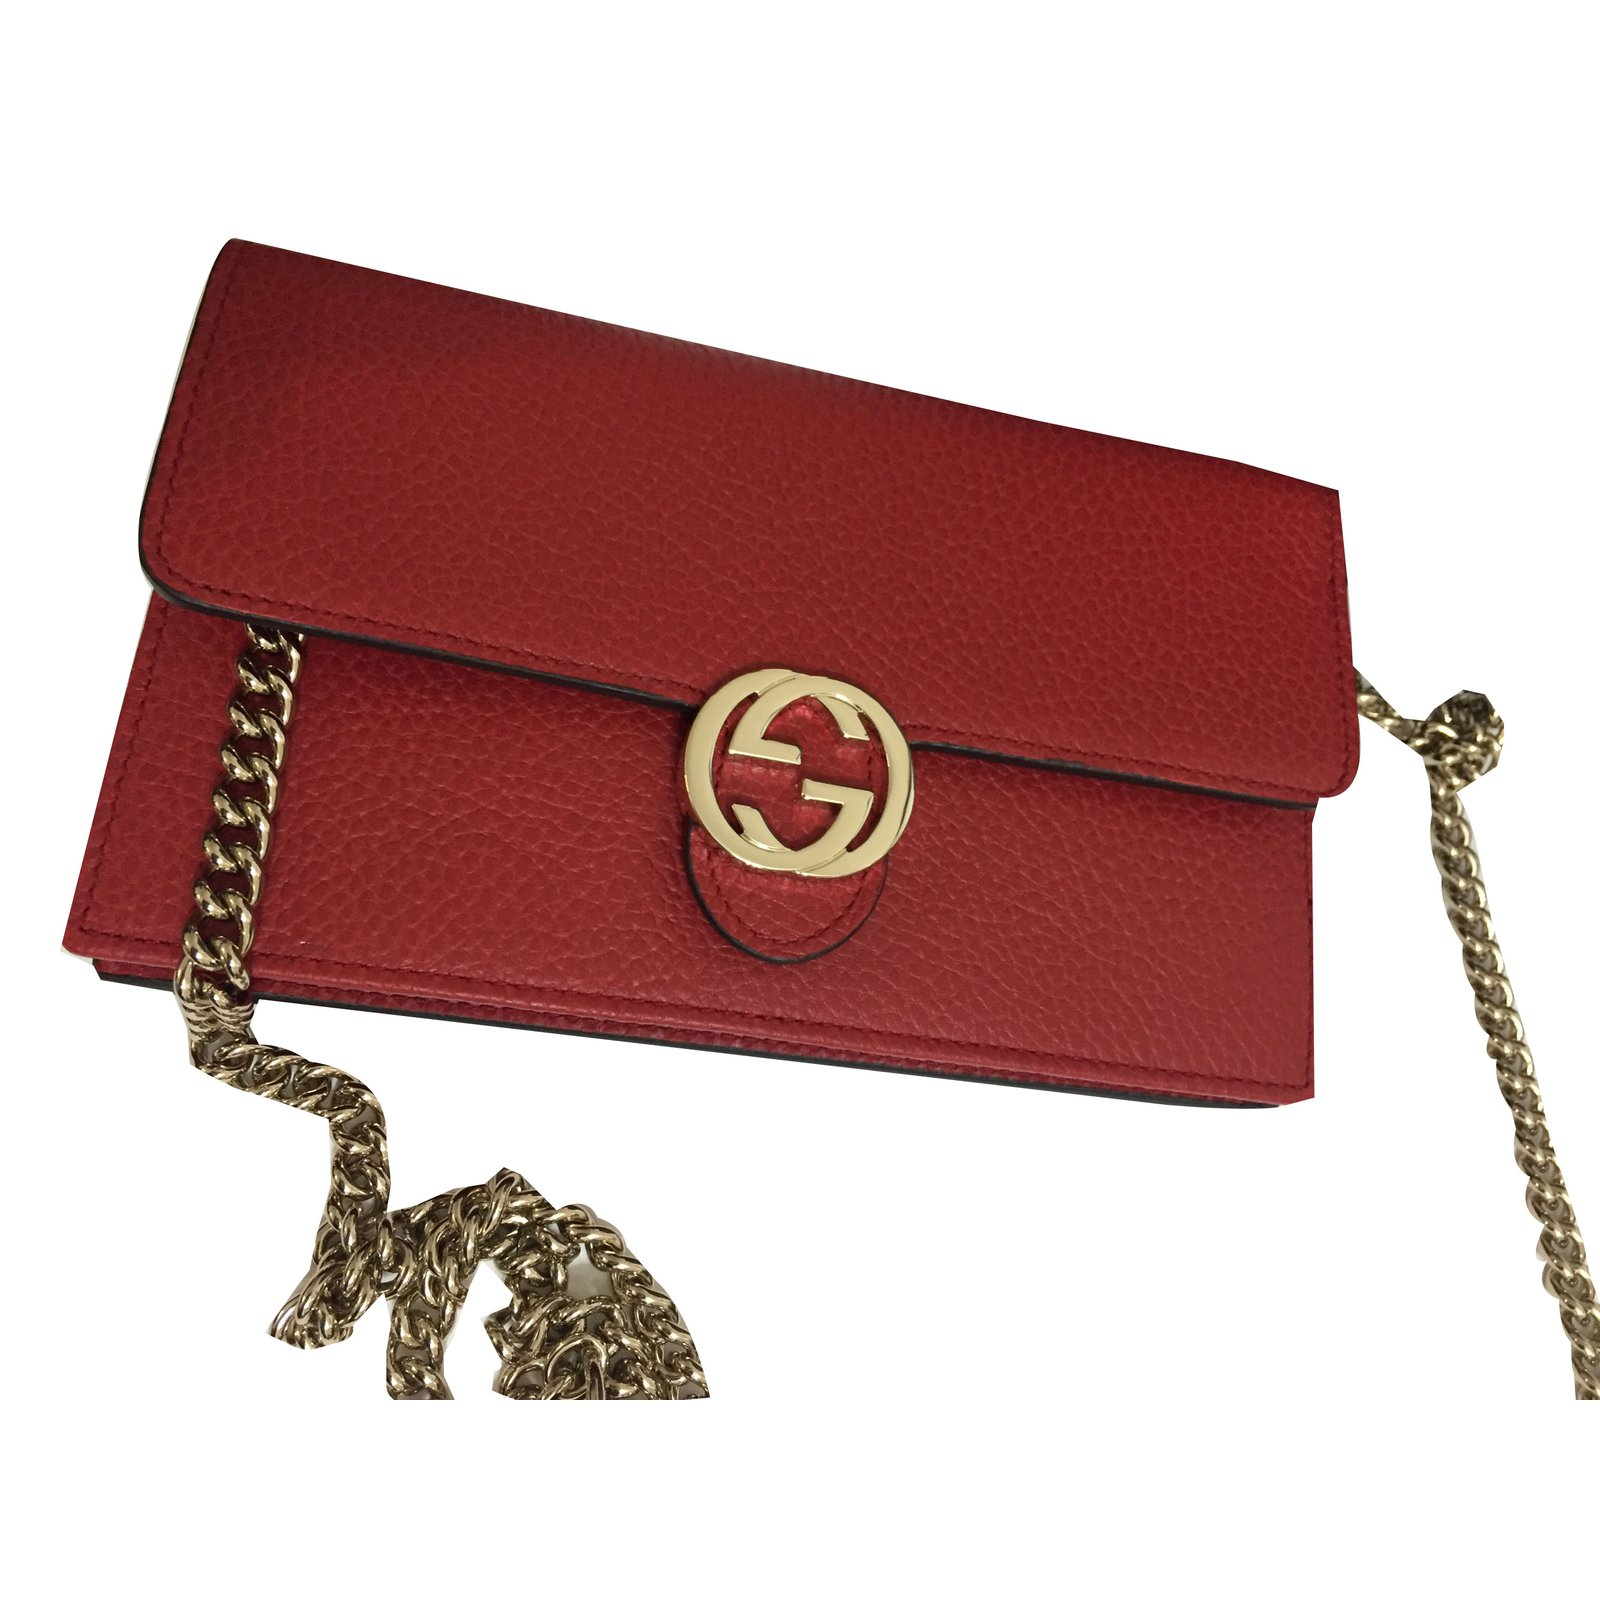 6e5711661 Gucci Wallet On Chain Uk | Stanford Center for Opportunity Policy in ...